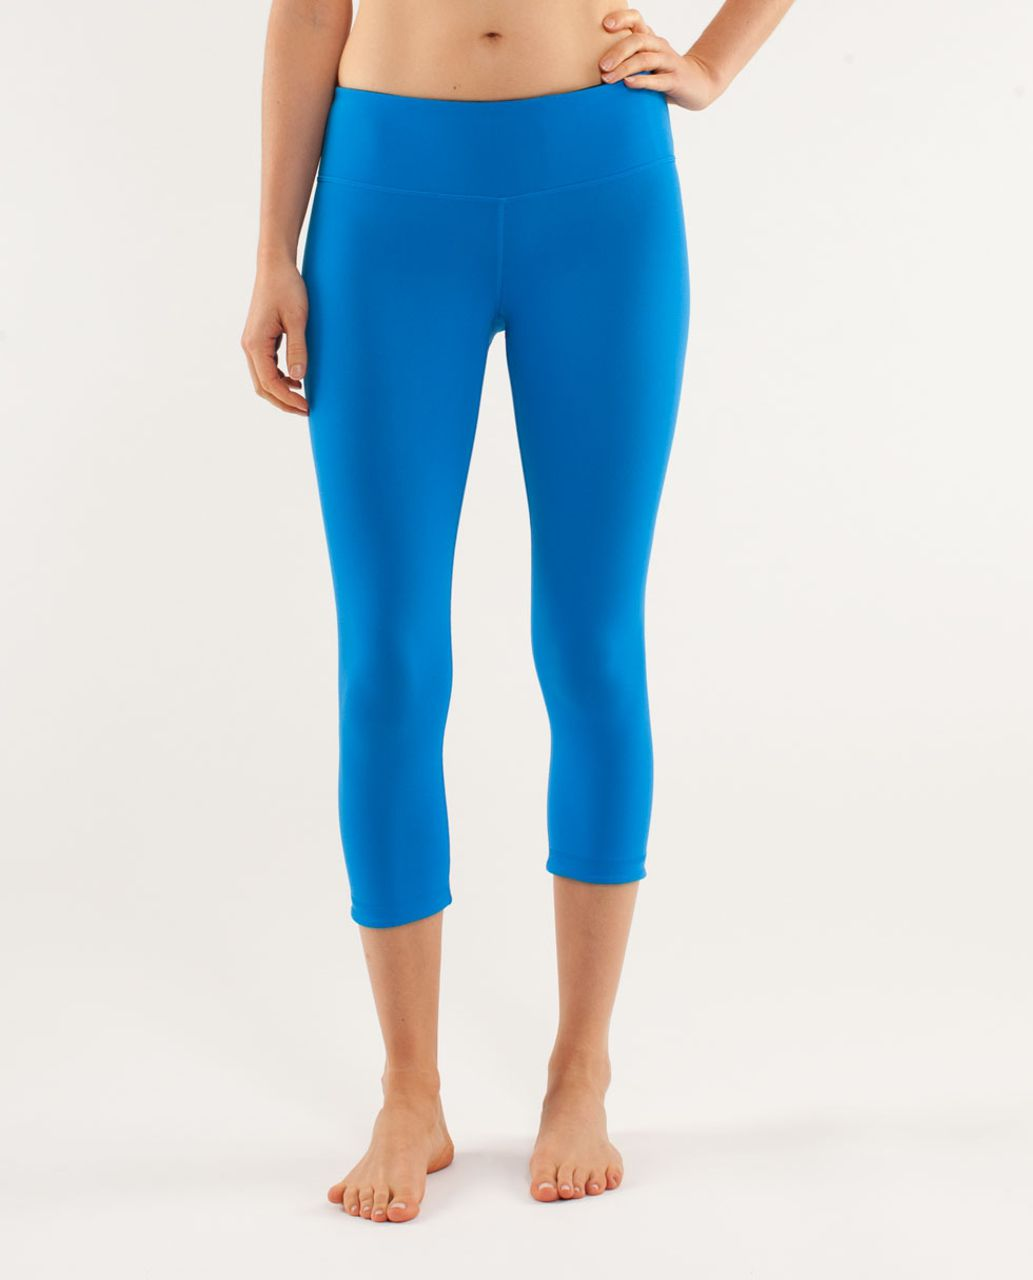 Lululemon Wunder Under Crop *Reversible - Beaming Blue / Black